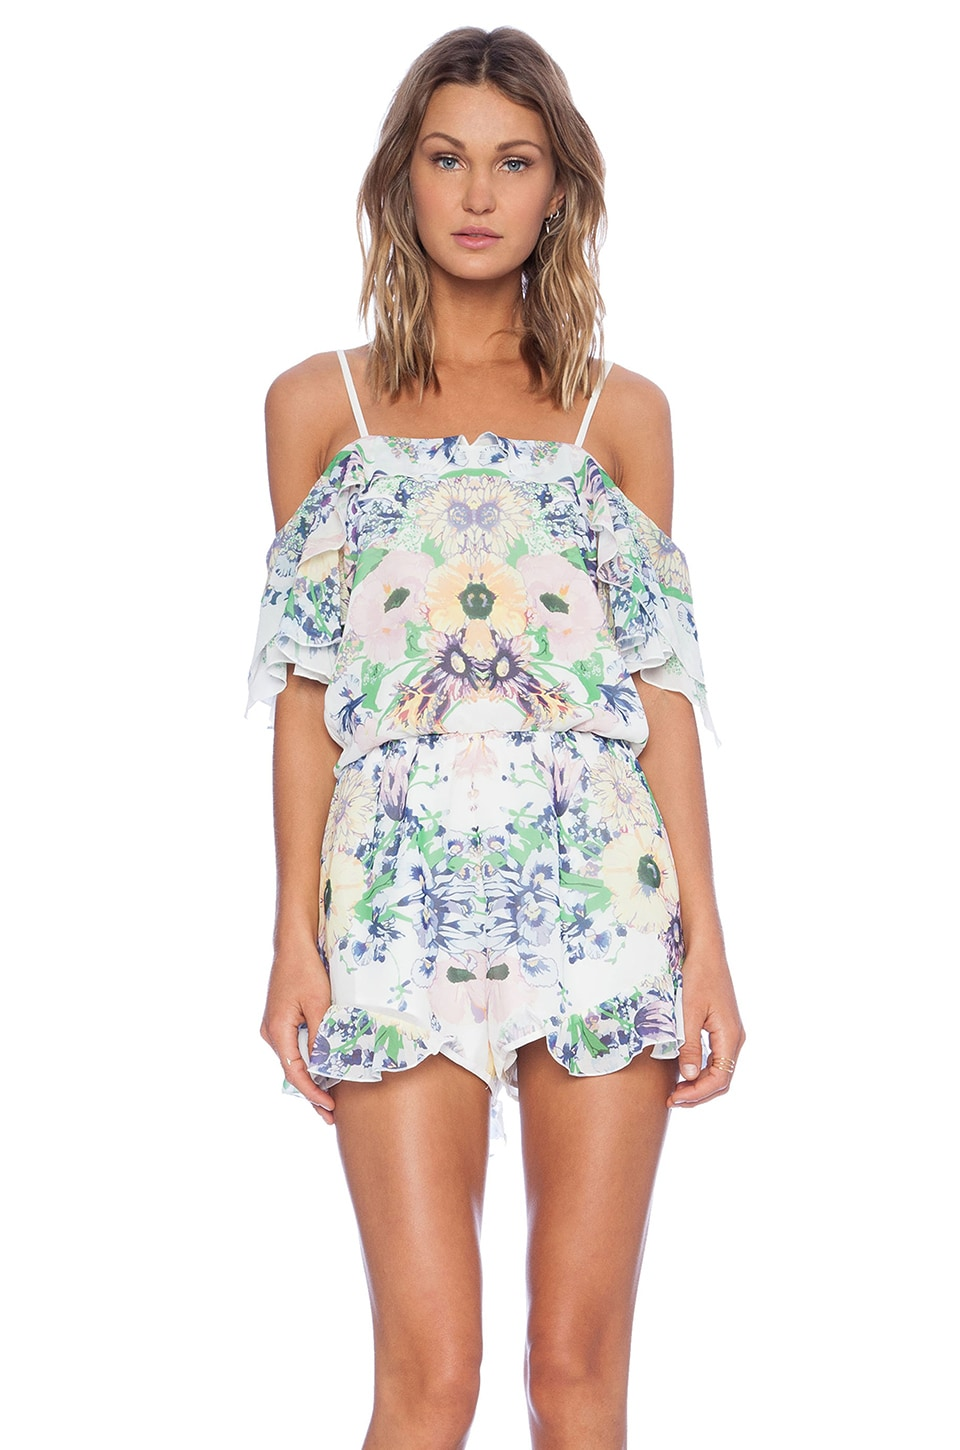 Alice McCall Tuberose Playsuit in Forget Me Not